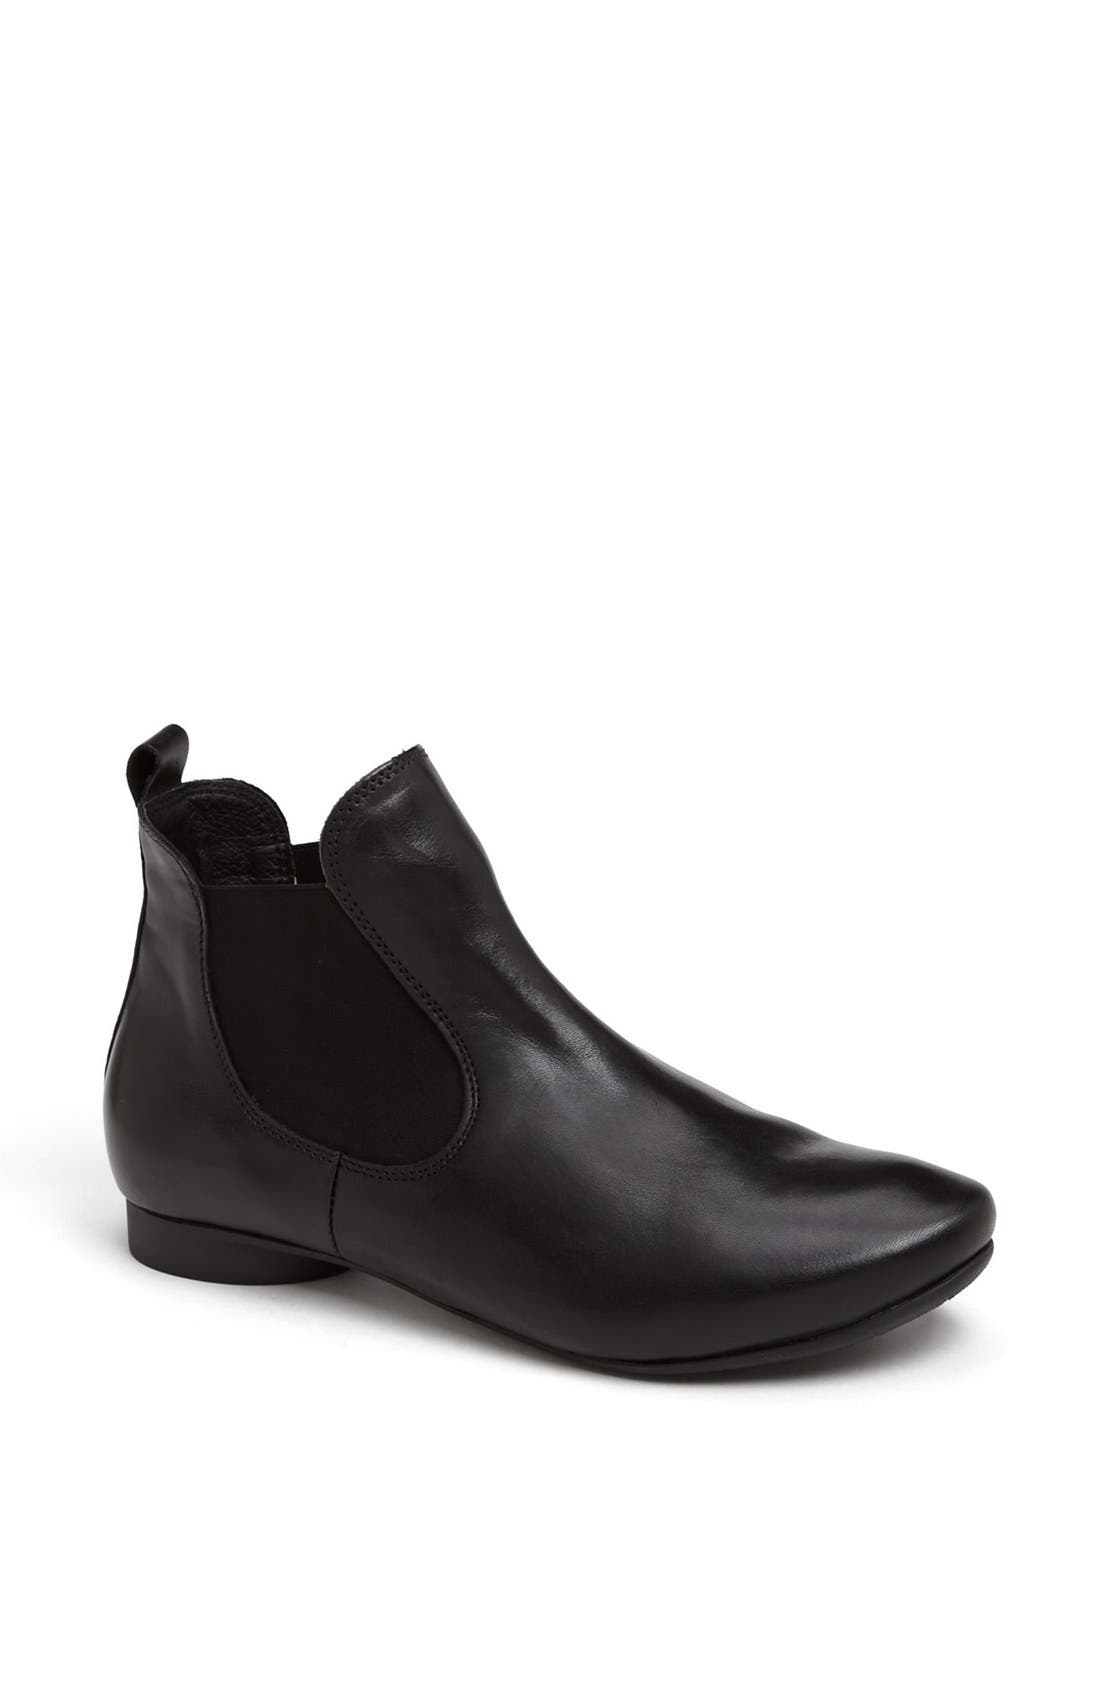 THINK! Chelsea Boot, Main, color, 001